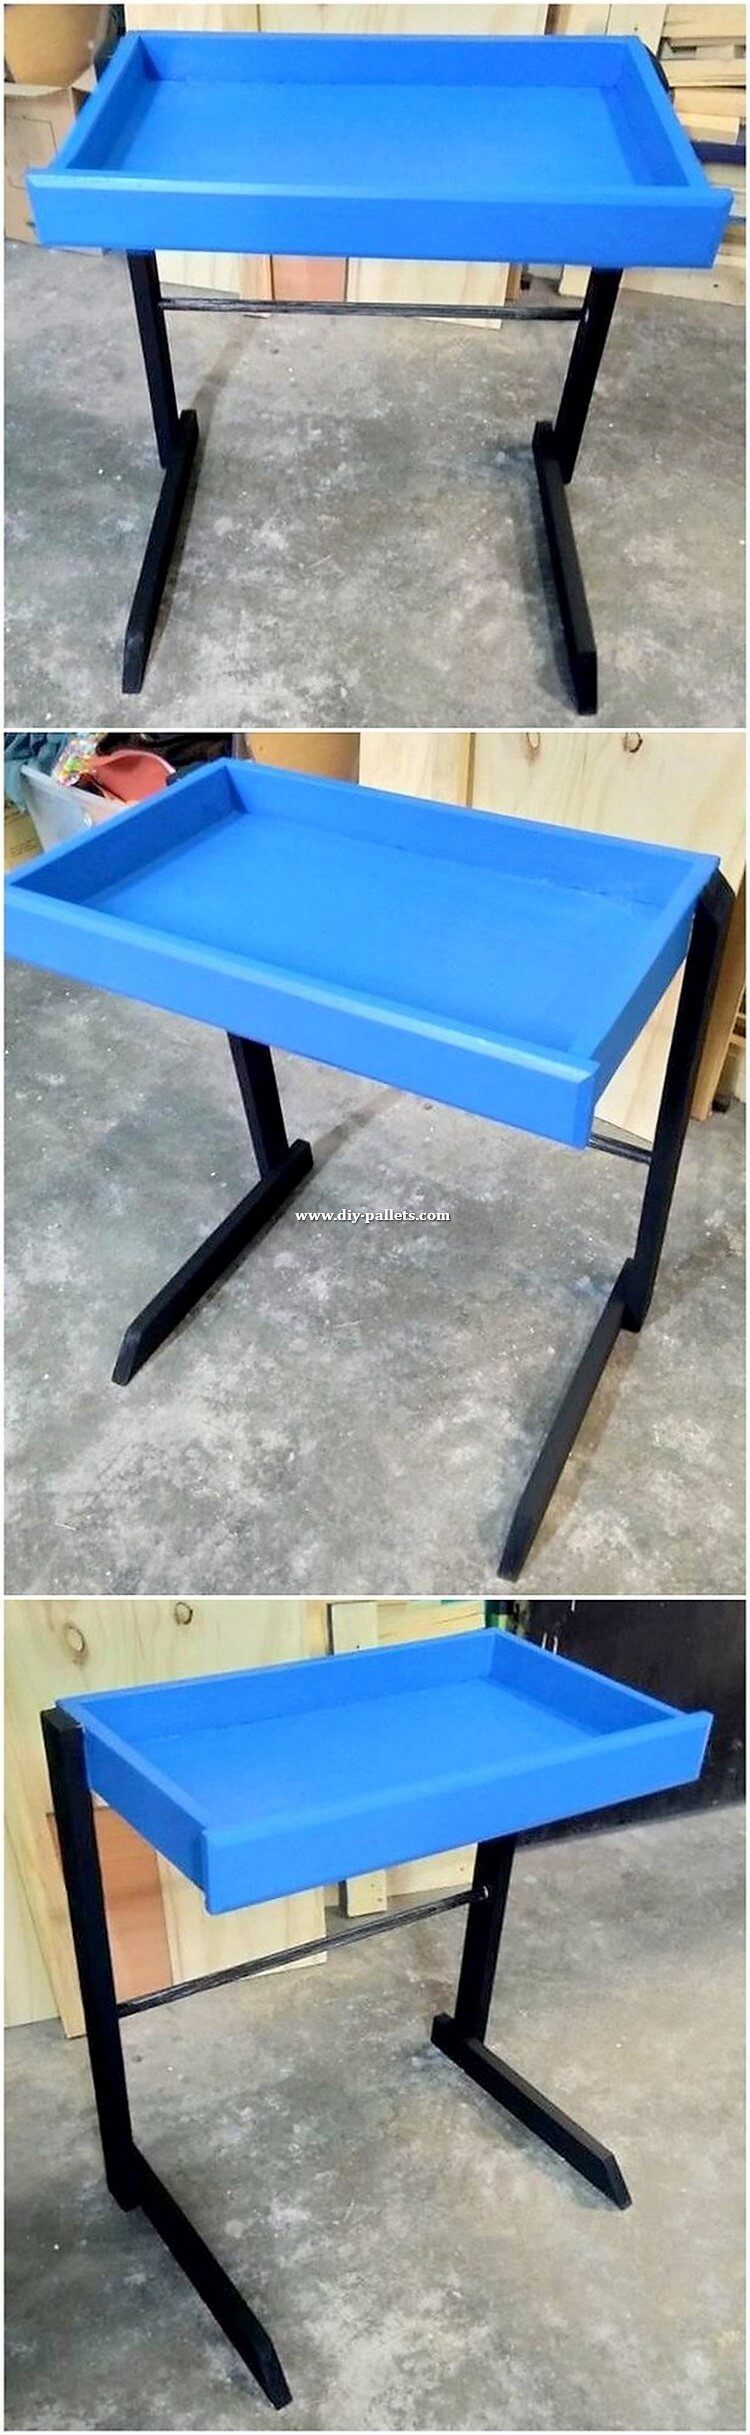 Pallet Tray with Stand